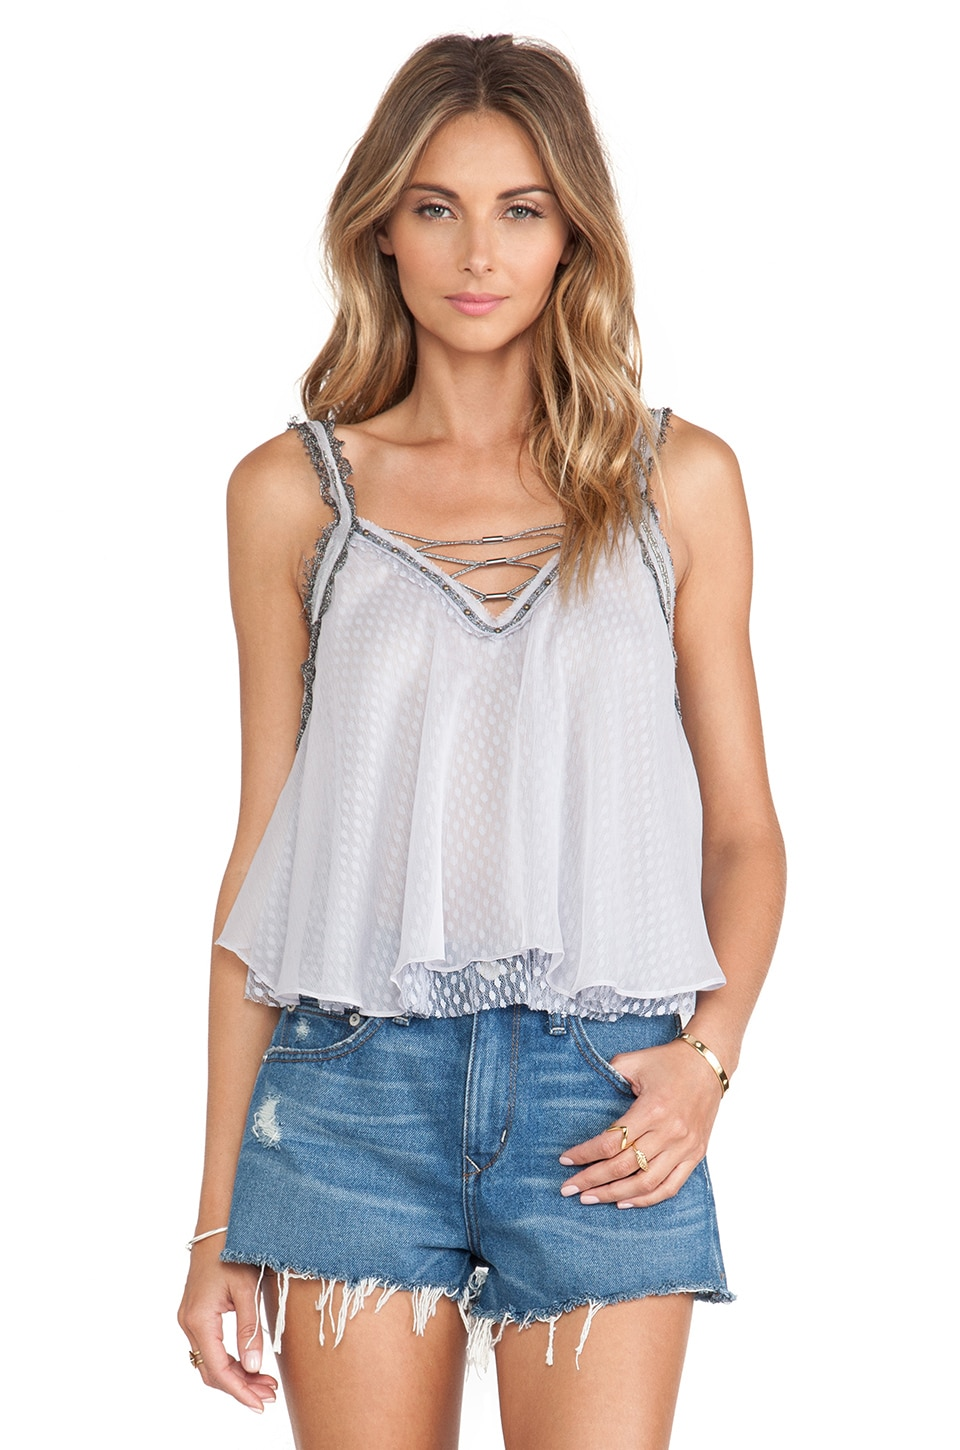 Free People Coasting on a Dream Top in Dolphin Blue